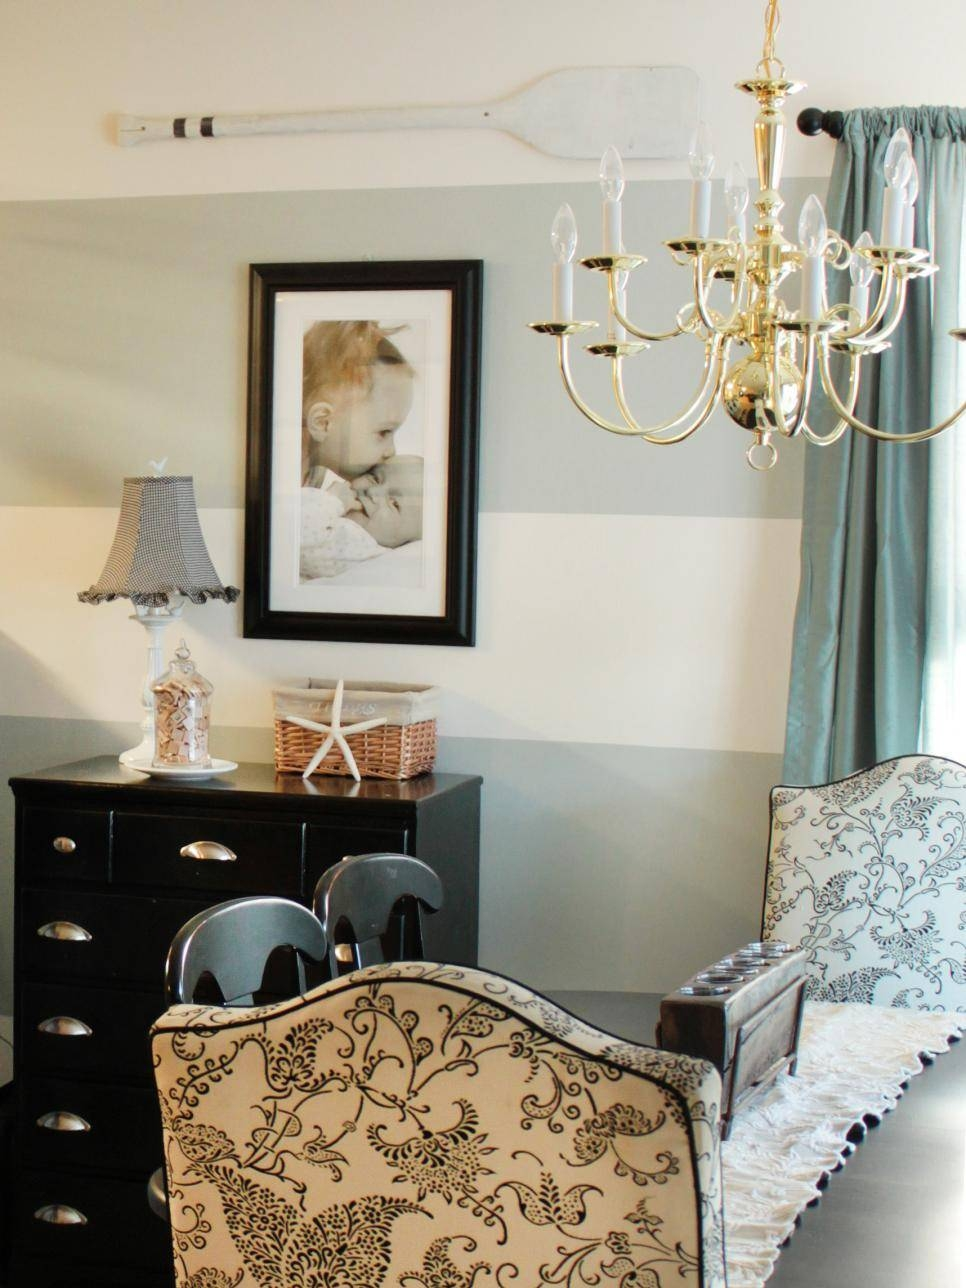 15 Dining Room Decorating Ideas | Hgtv Intended For Best And Newest Wall Art For Dining Room (View 18 of 20)